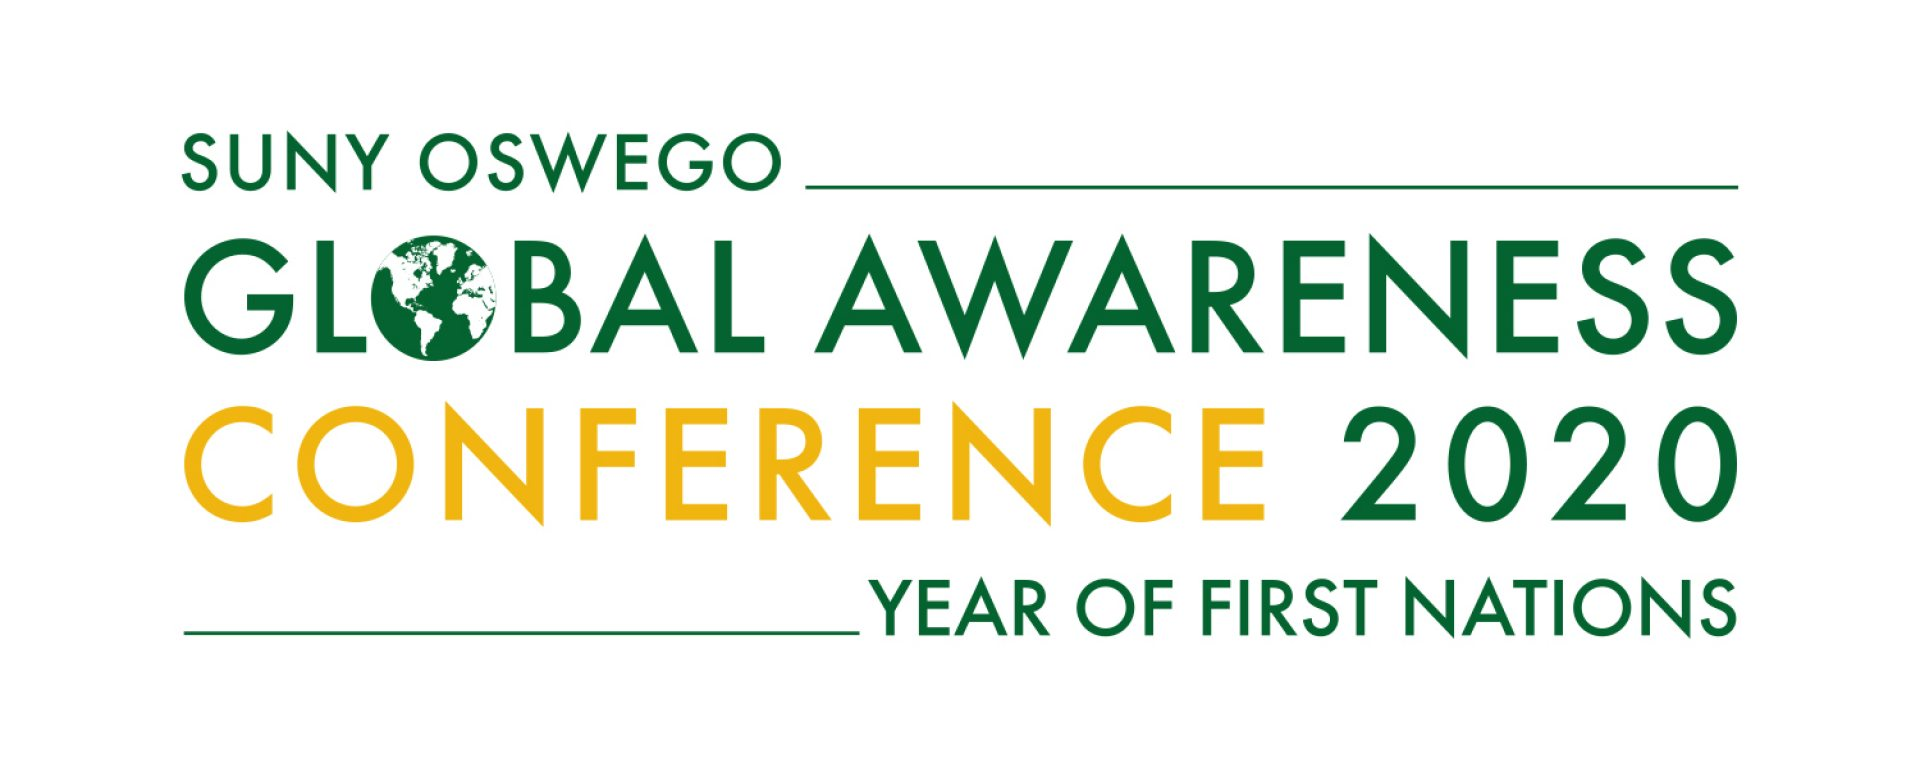 2020 Global Awareness Conference logo